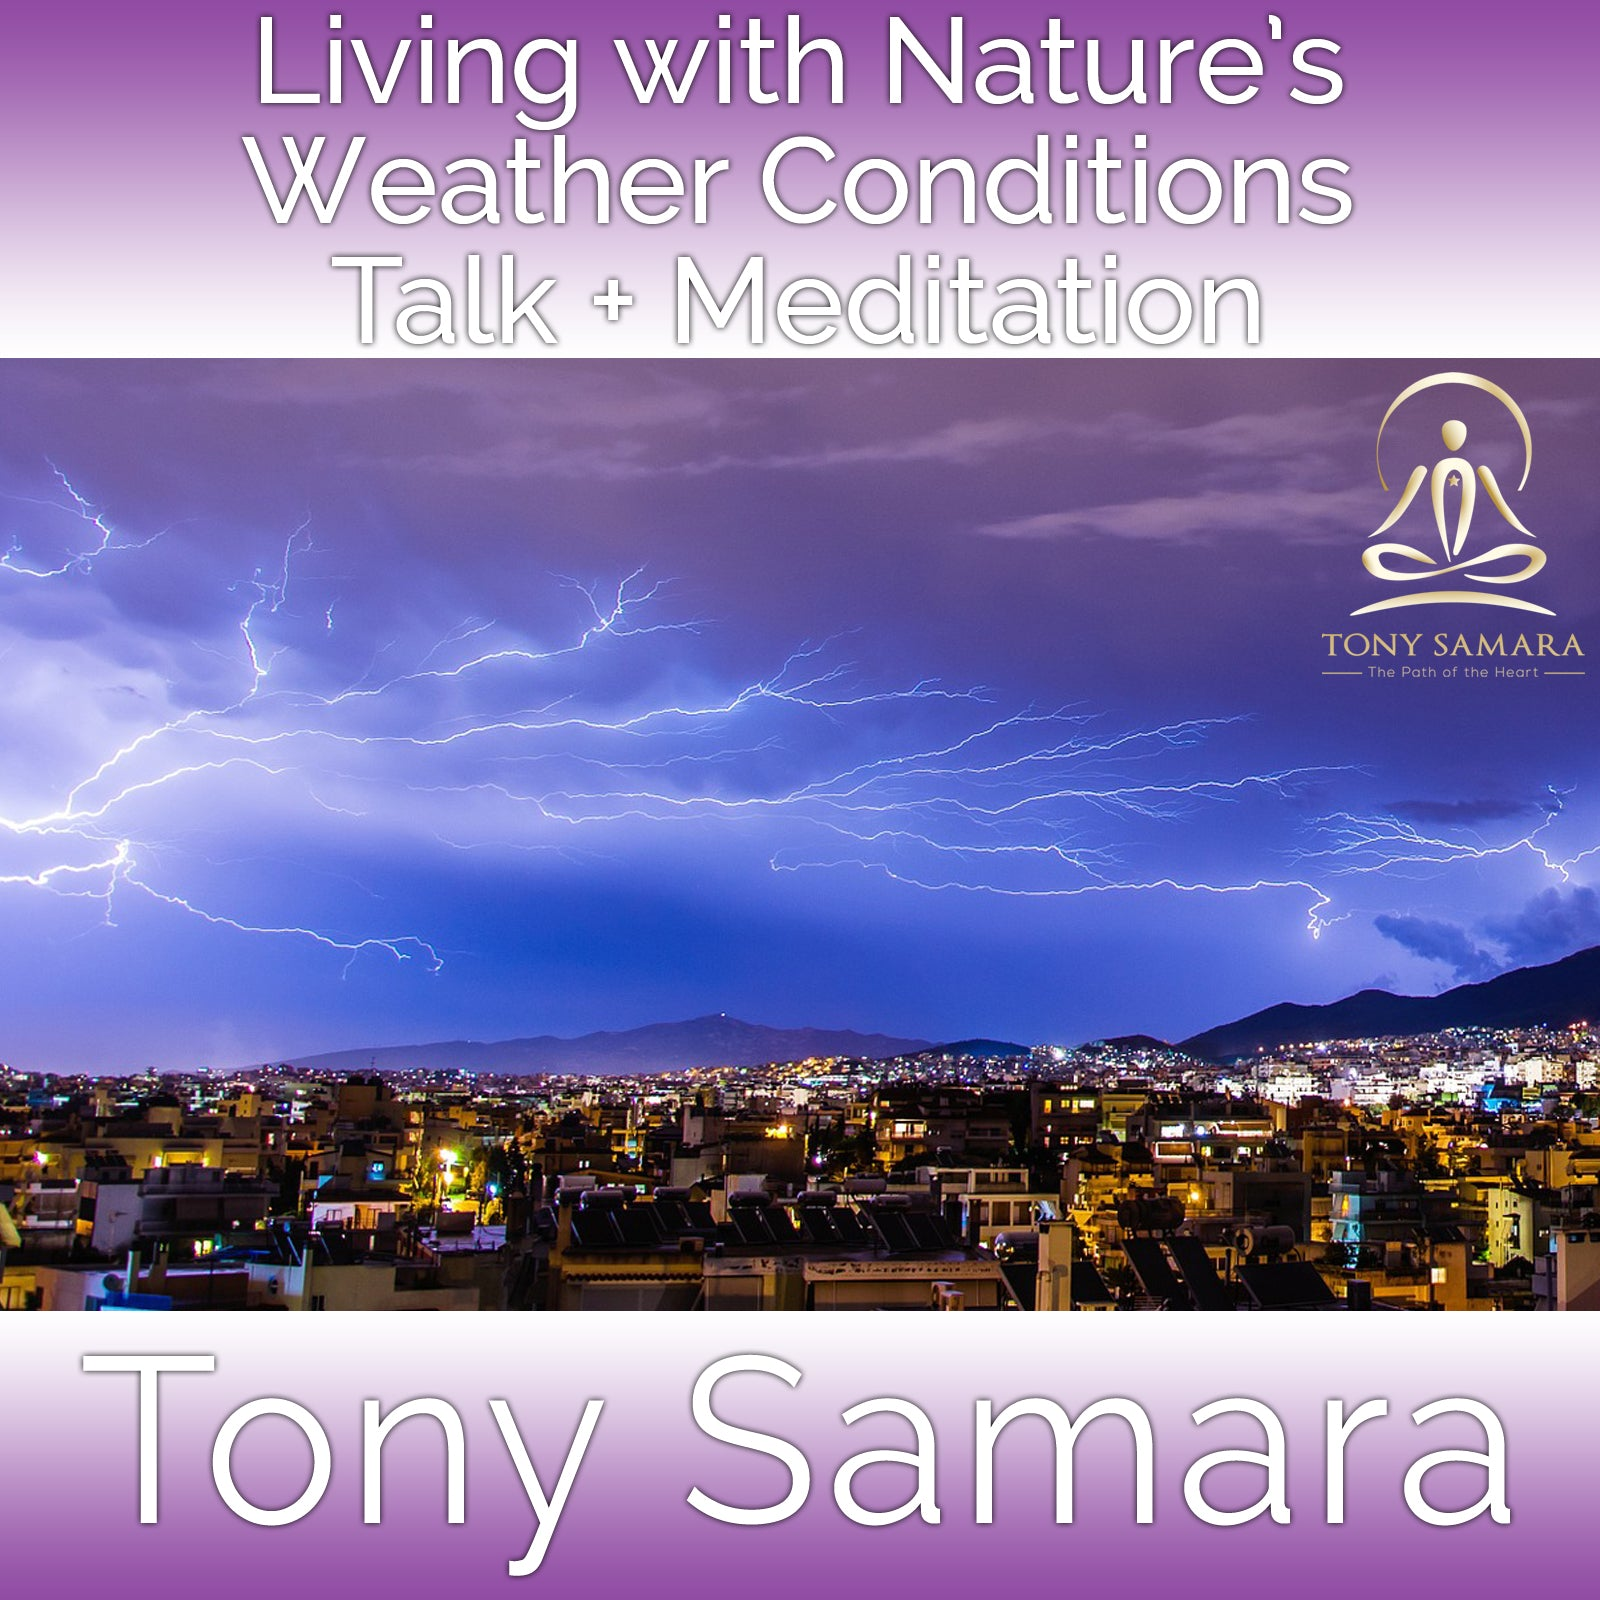 Living with Nature's Weather Conditions Talk + Meditation (MP3 Audio Download) - Tony Samara Meditation